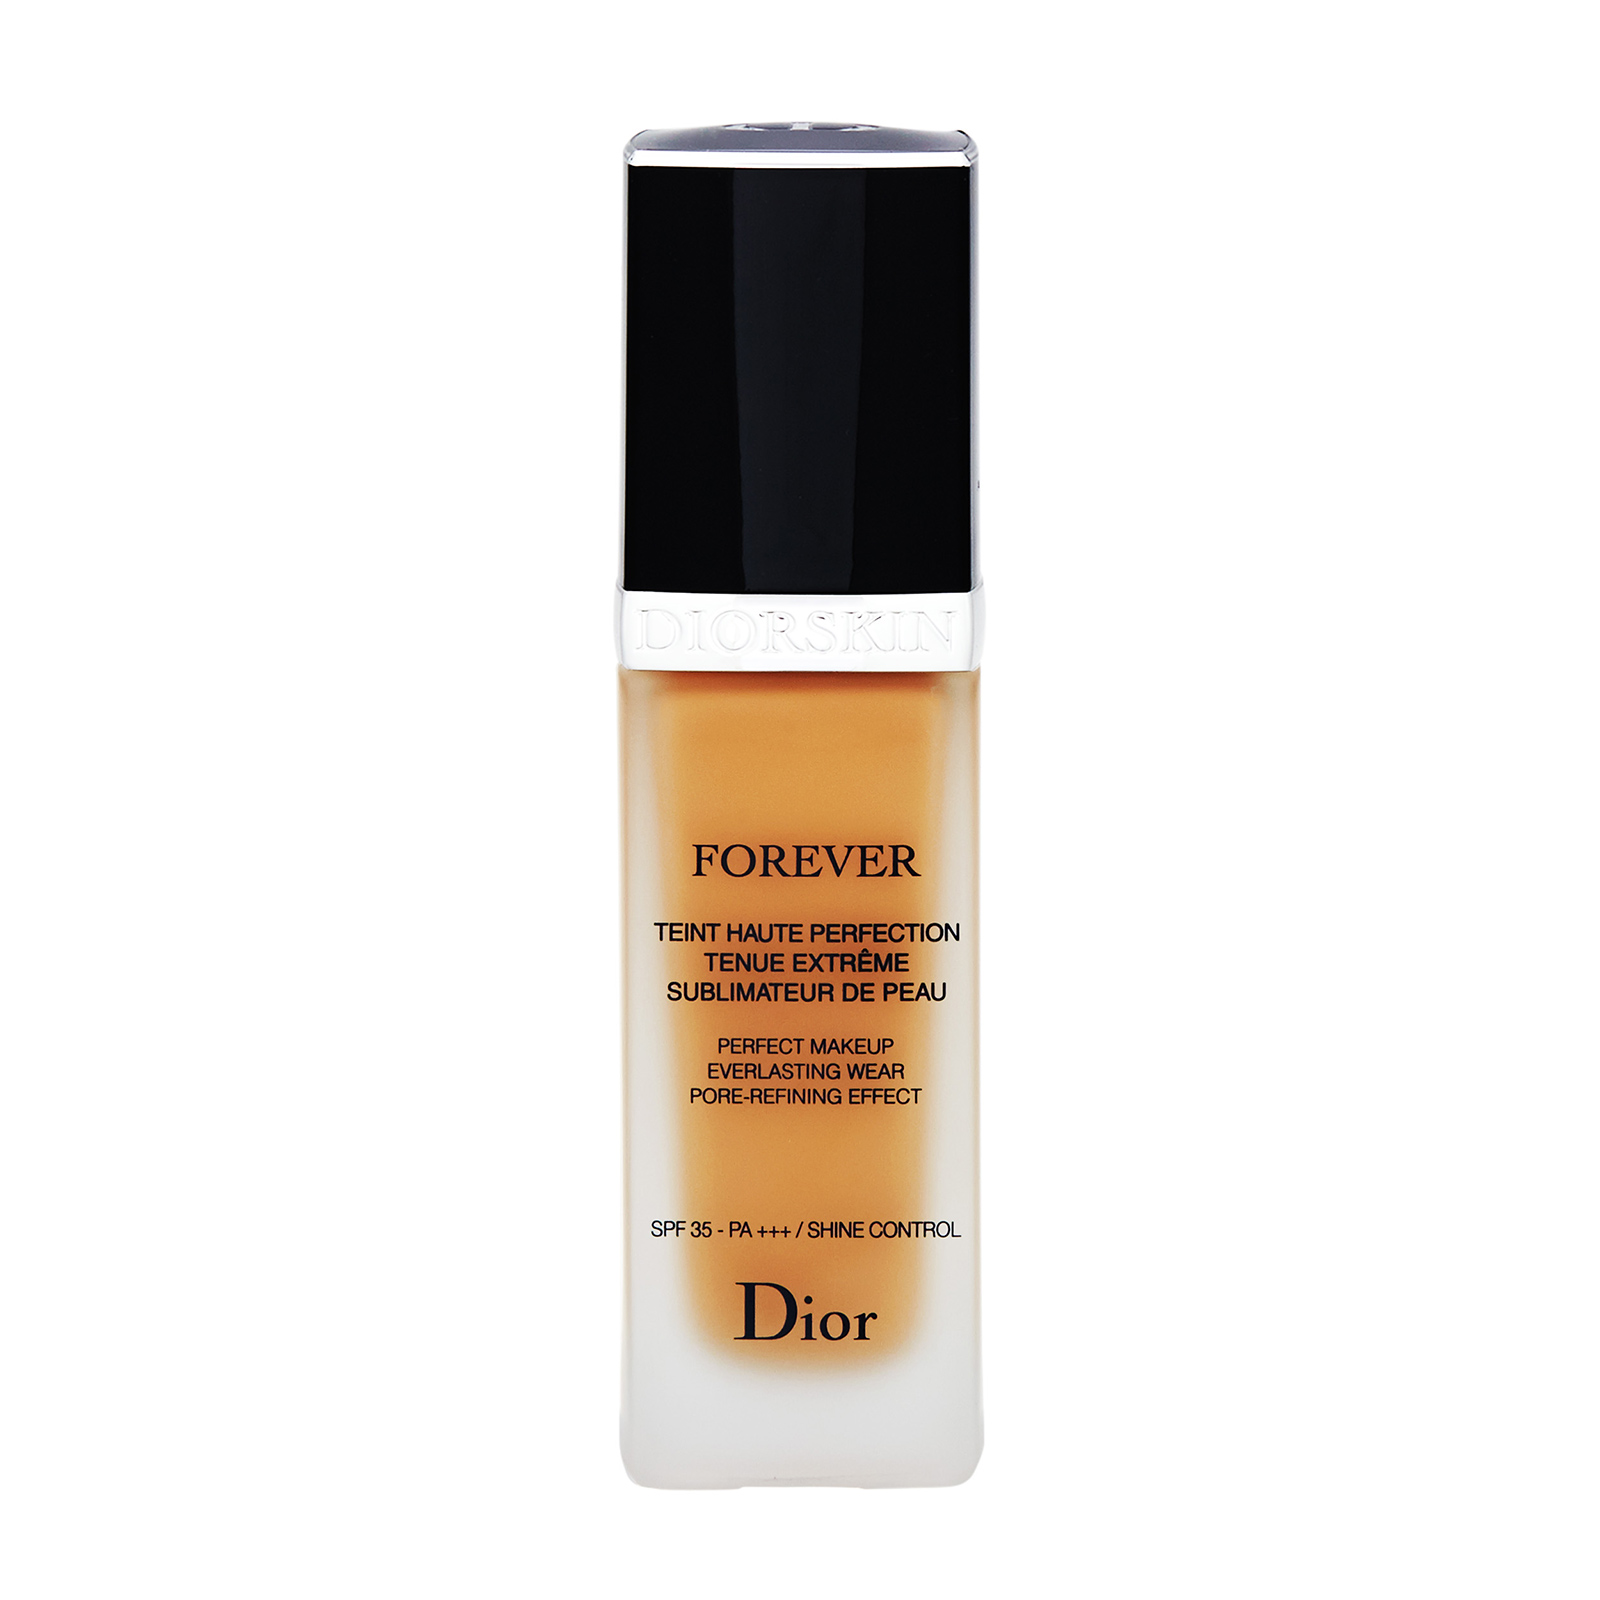 Christian Dior DiorSkin Forever  Perfect Makeup Everlasting Wear Pore-Refining Effect SPF35 / PA+++ 022 Cameo, 1oz, 30ml